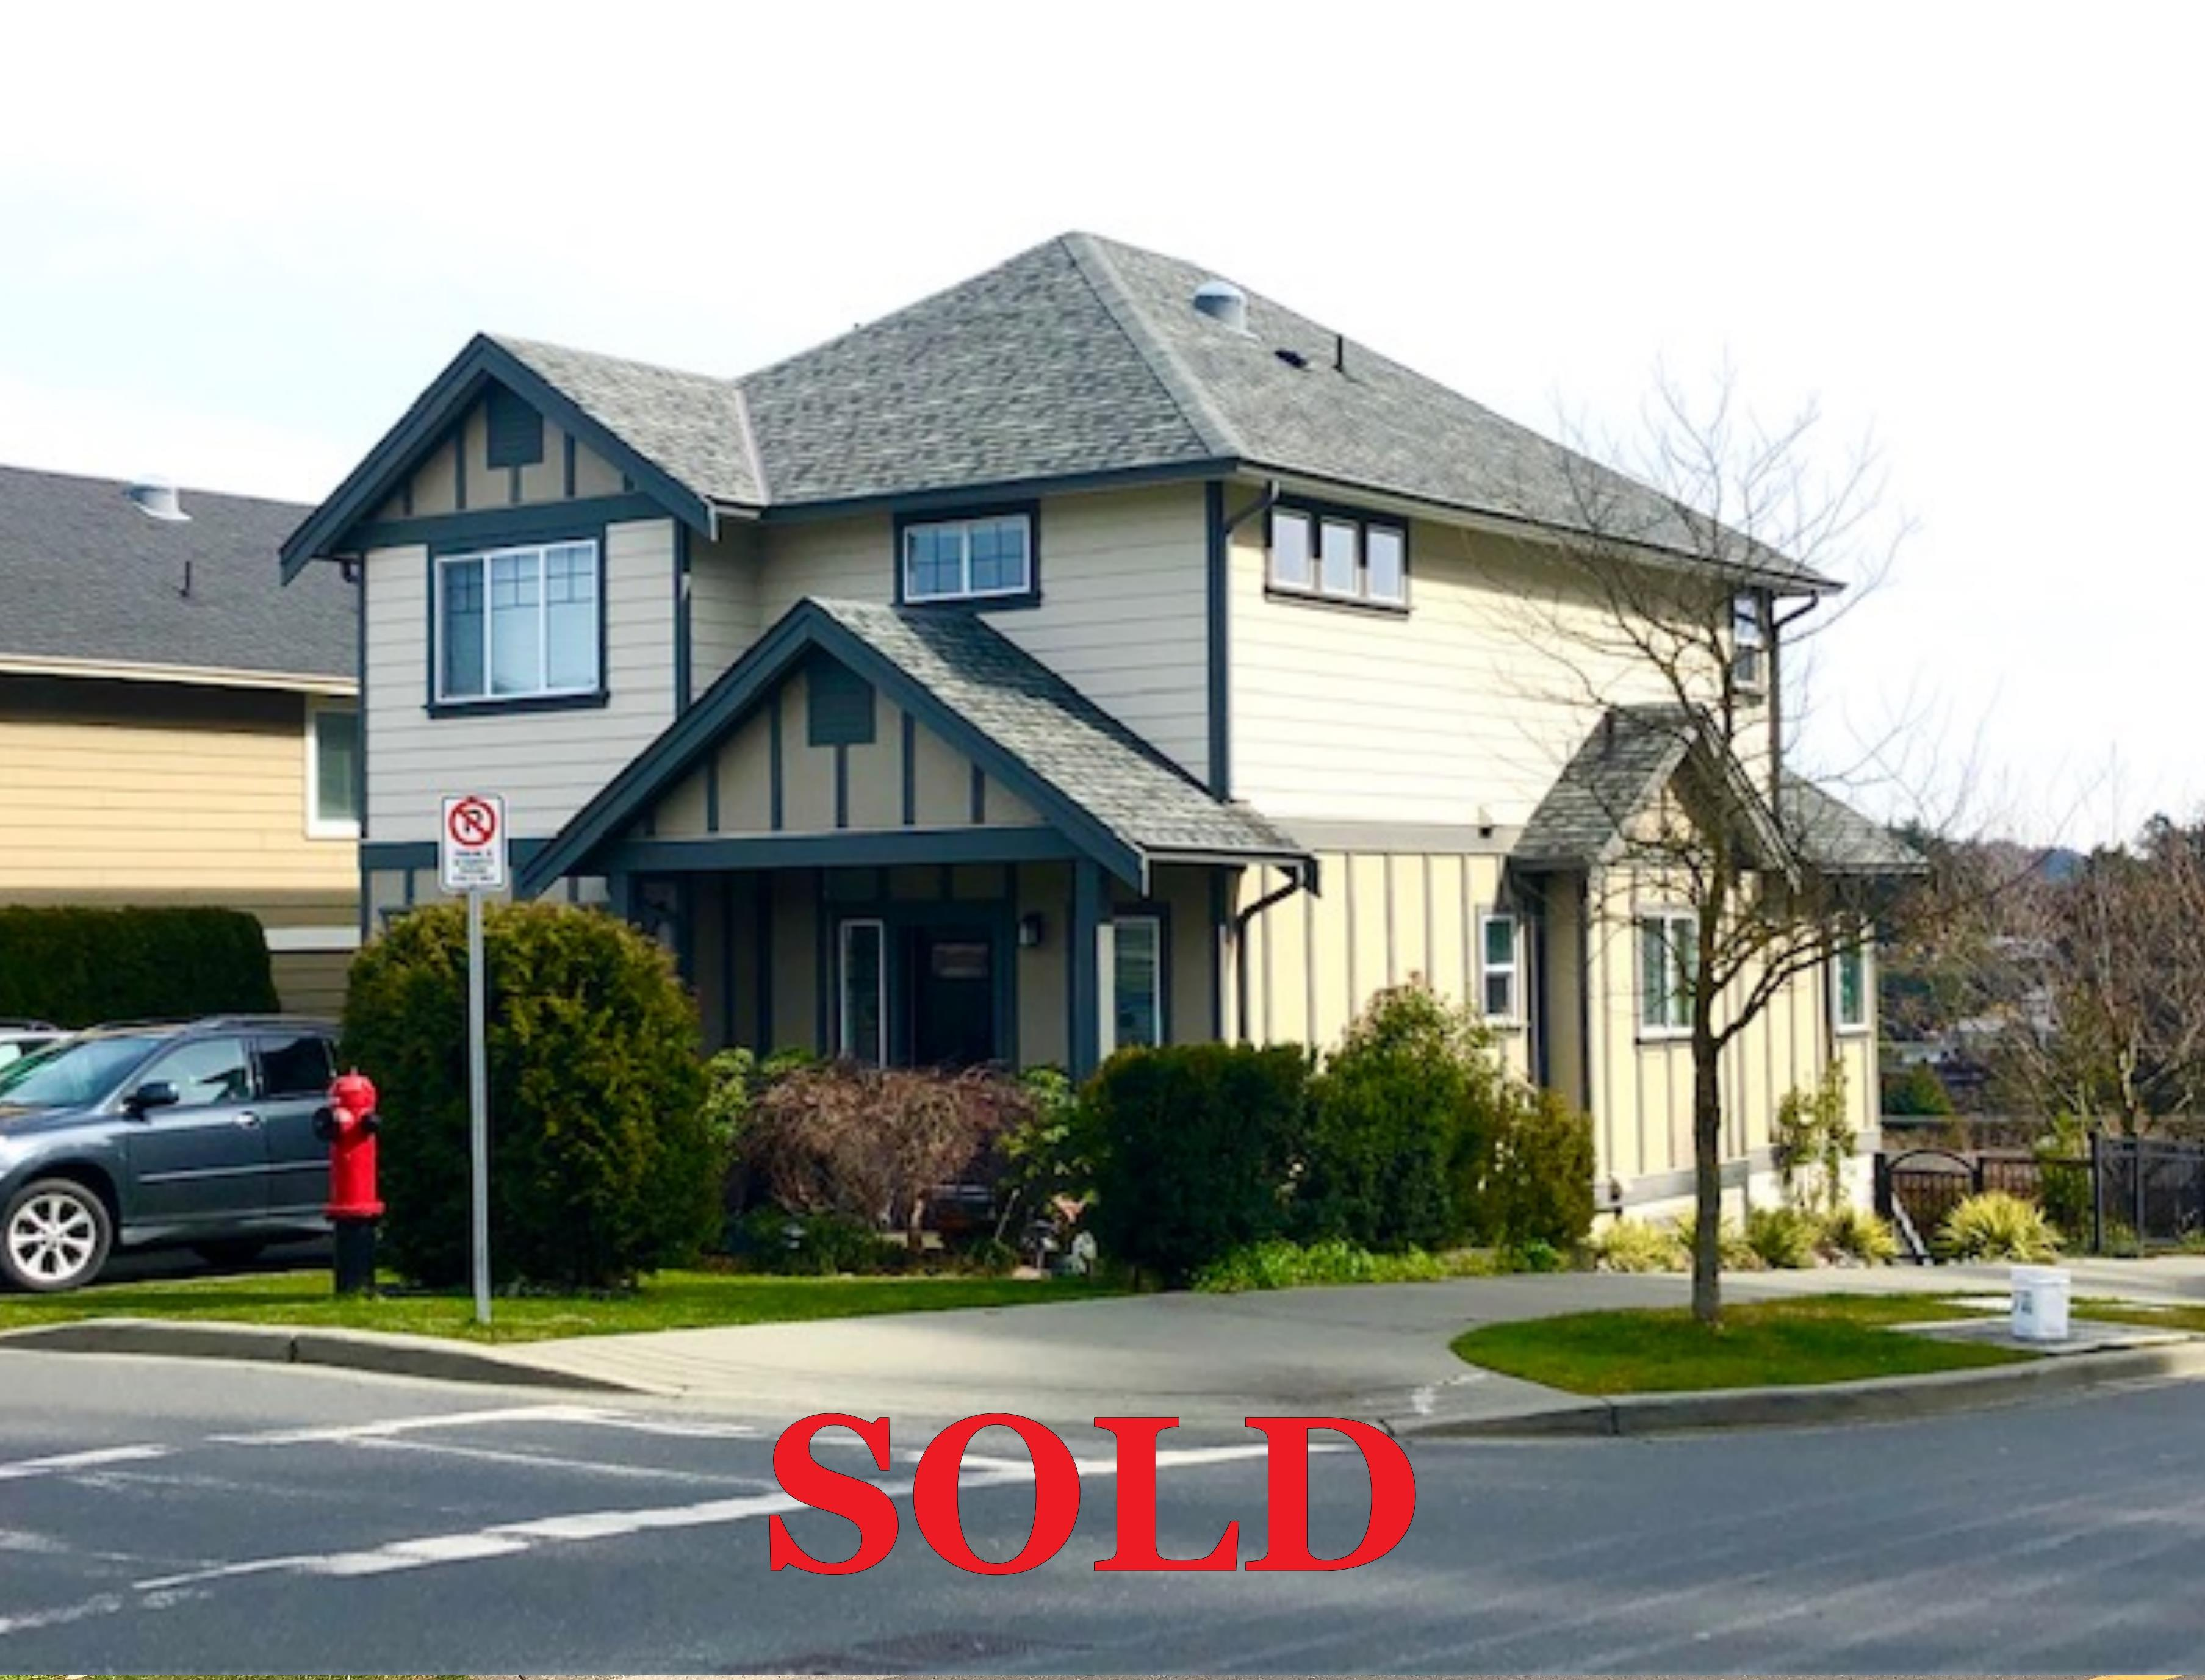 Sold by David Stevens, Royal LePage Victoria, BC